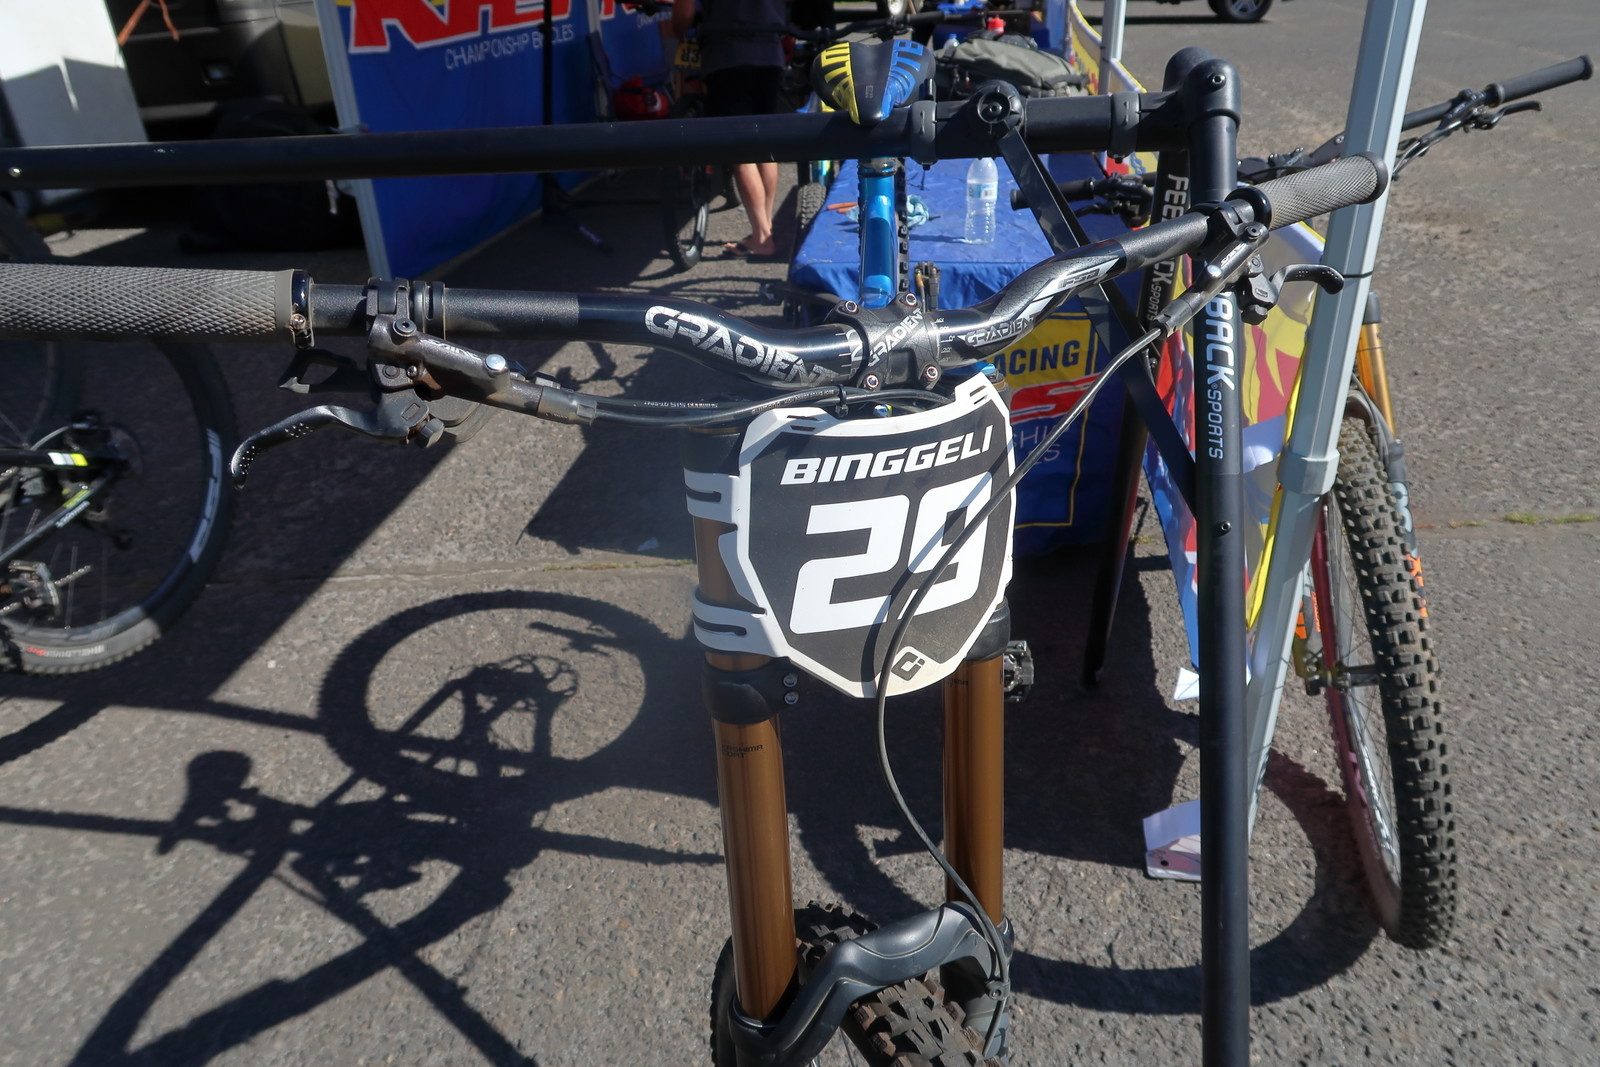 Logan Binggeli's Plate, Age and Wheel Size All in One - PIT BITS - Tamarack Pro GRT / NW Cup - Mountain Biking Pictures - Vital MTB